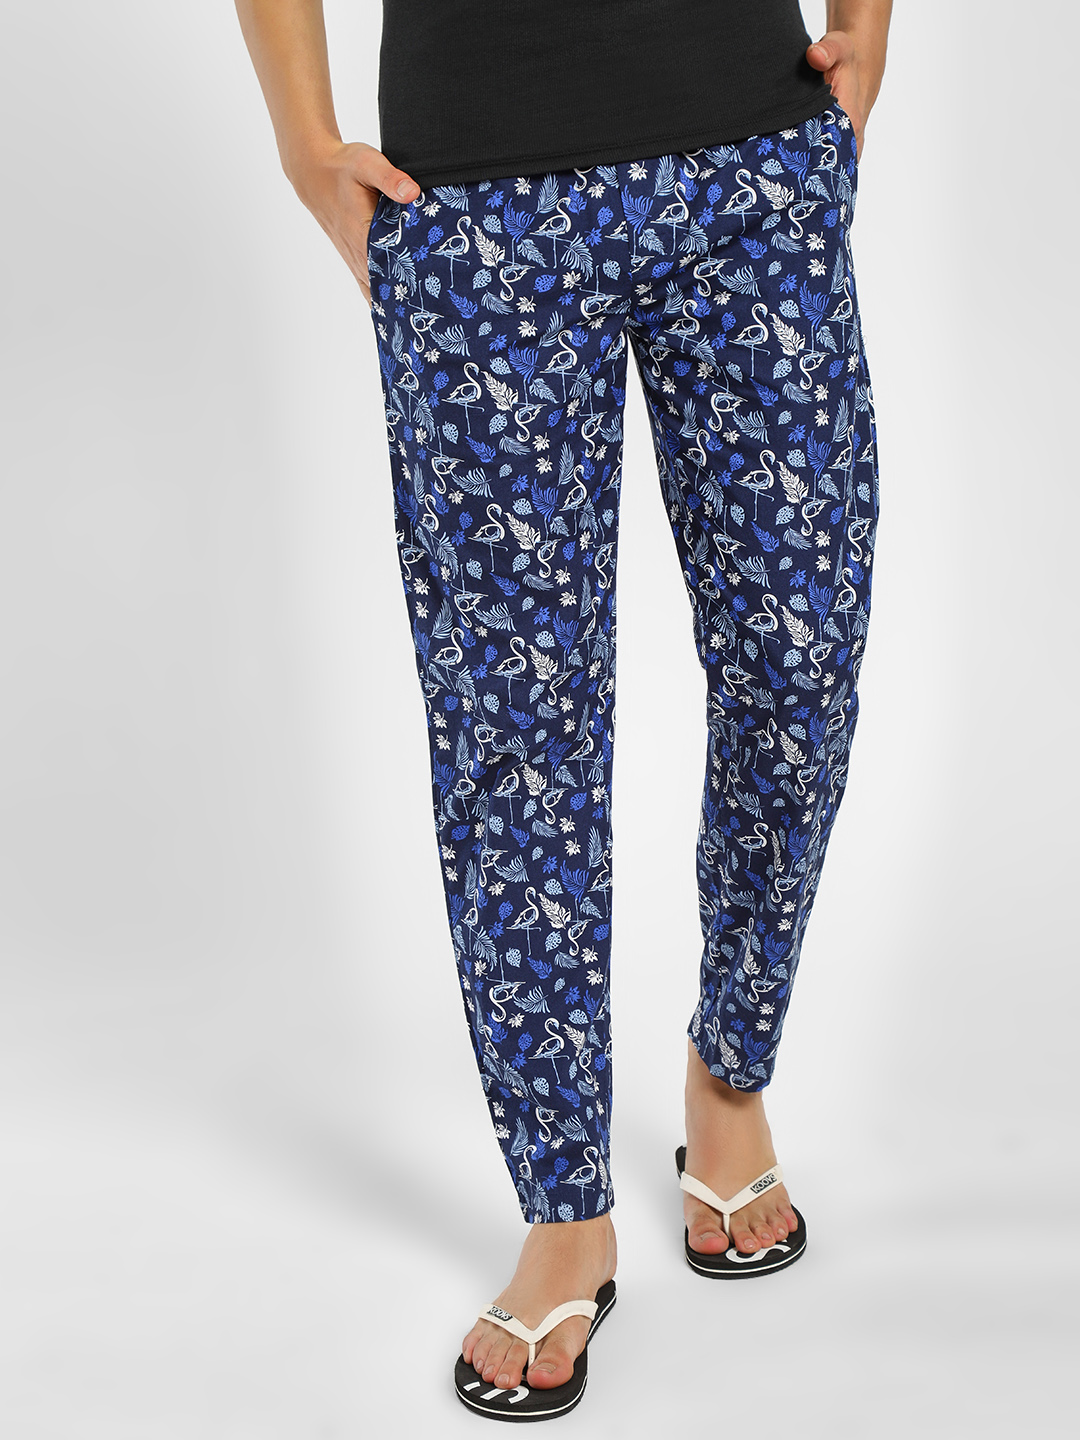 Jack & Jones Black Pelican Bird Print Lounge Pants 1